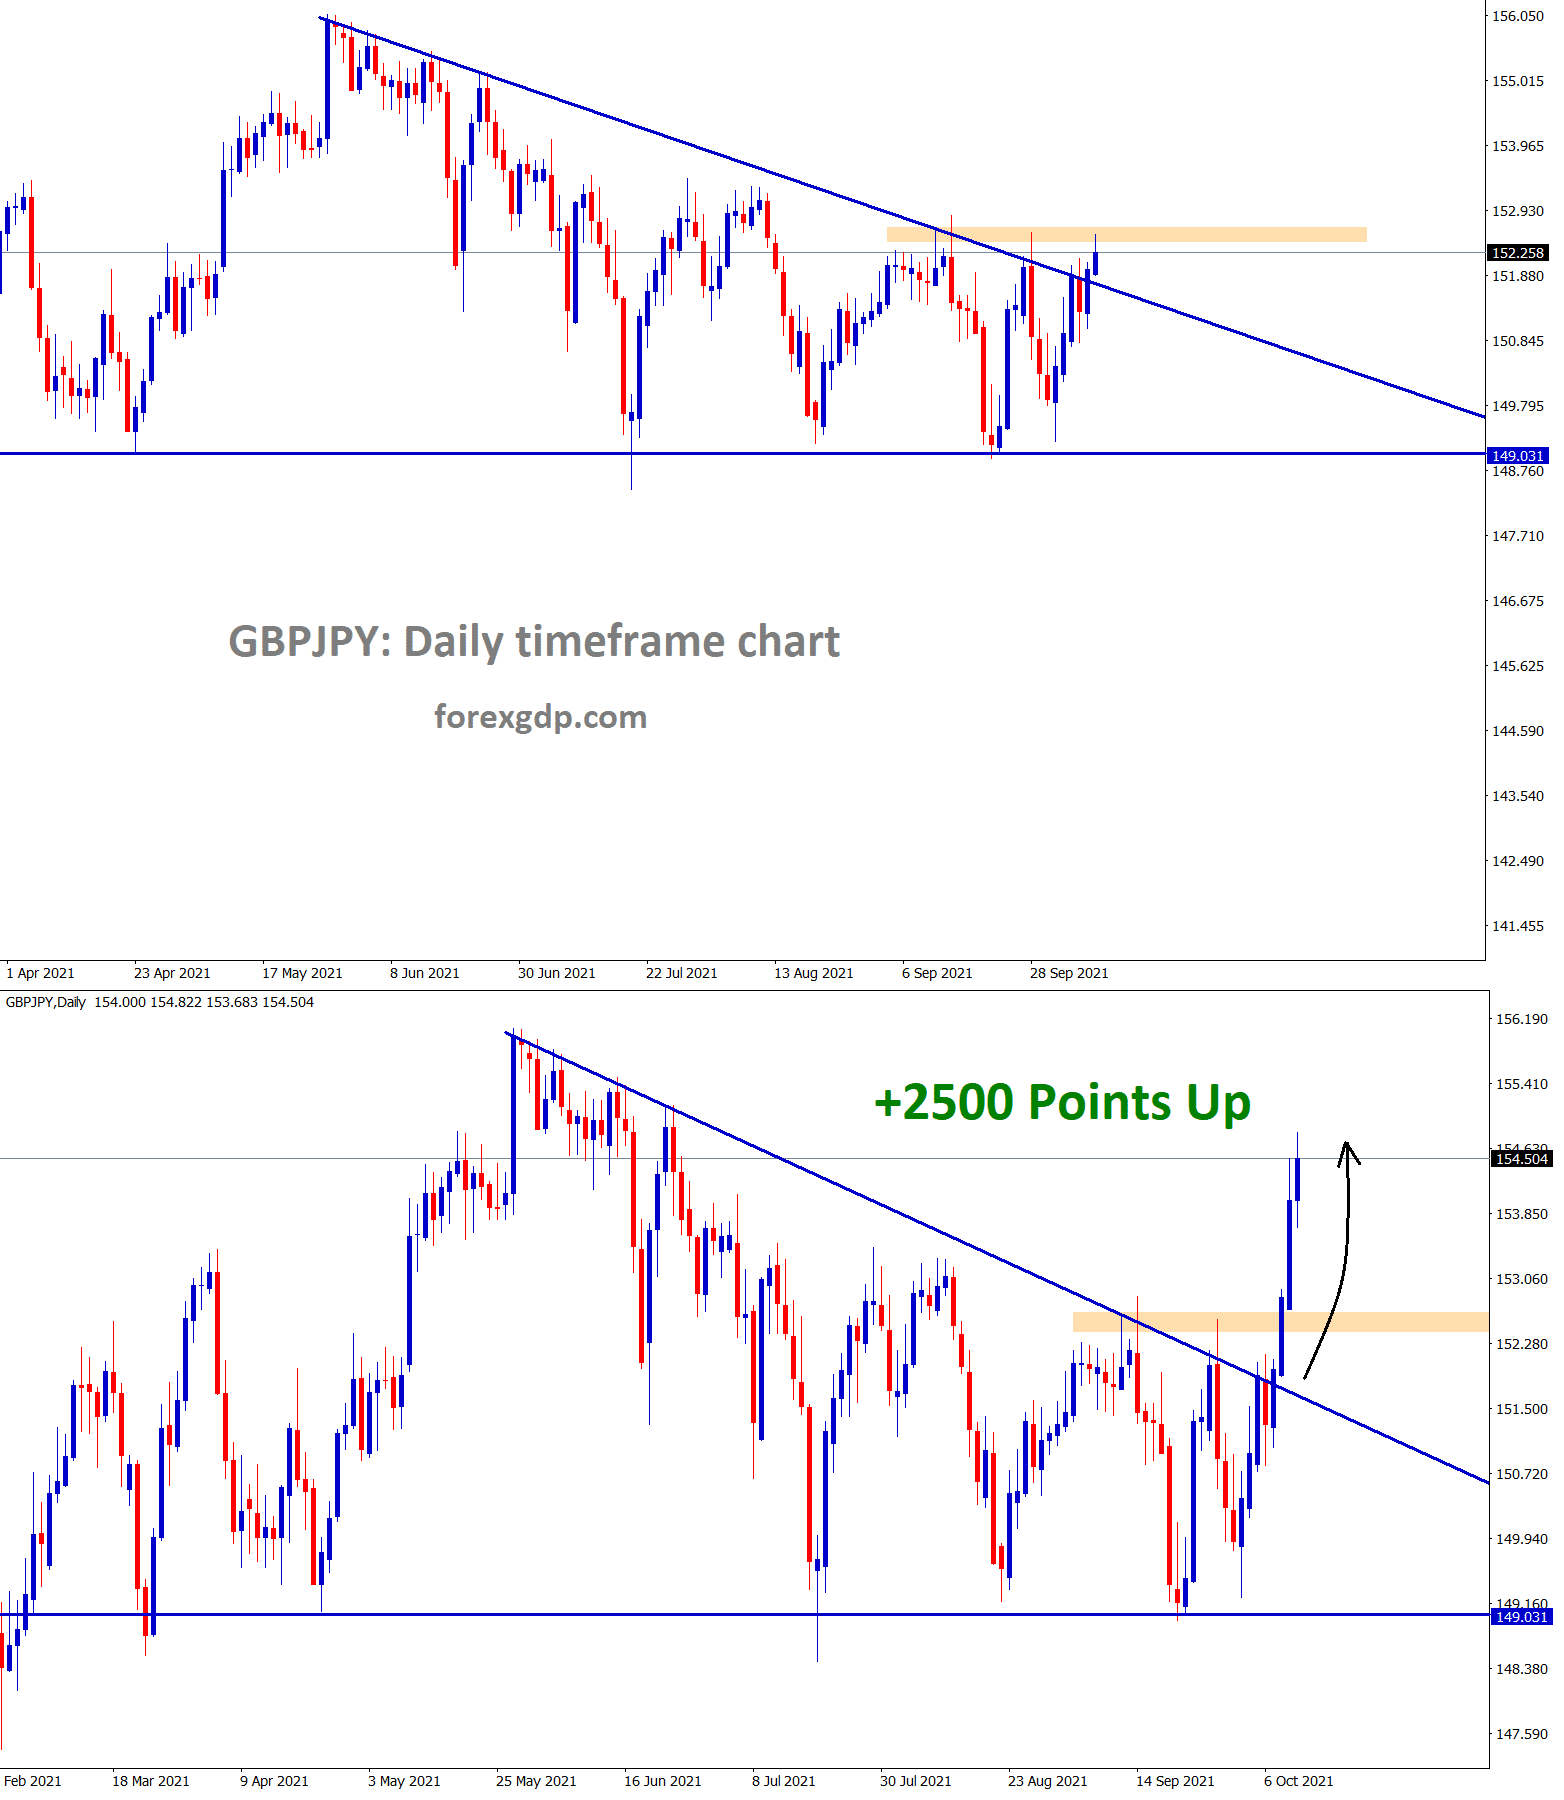 GBPJPY has broken the top of the descending triangle and went up 2500 points